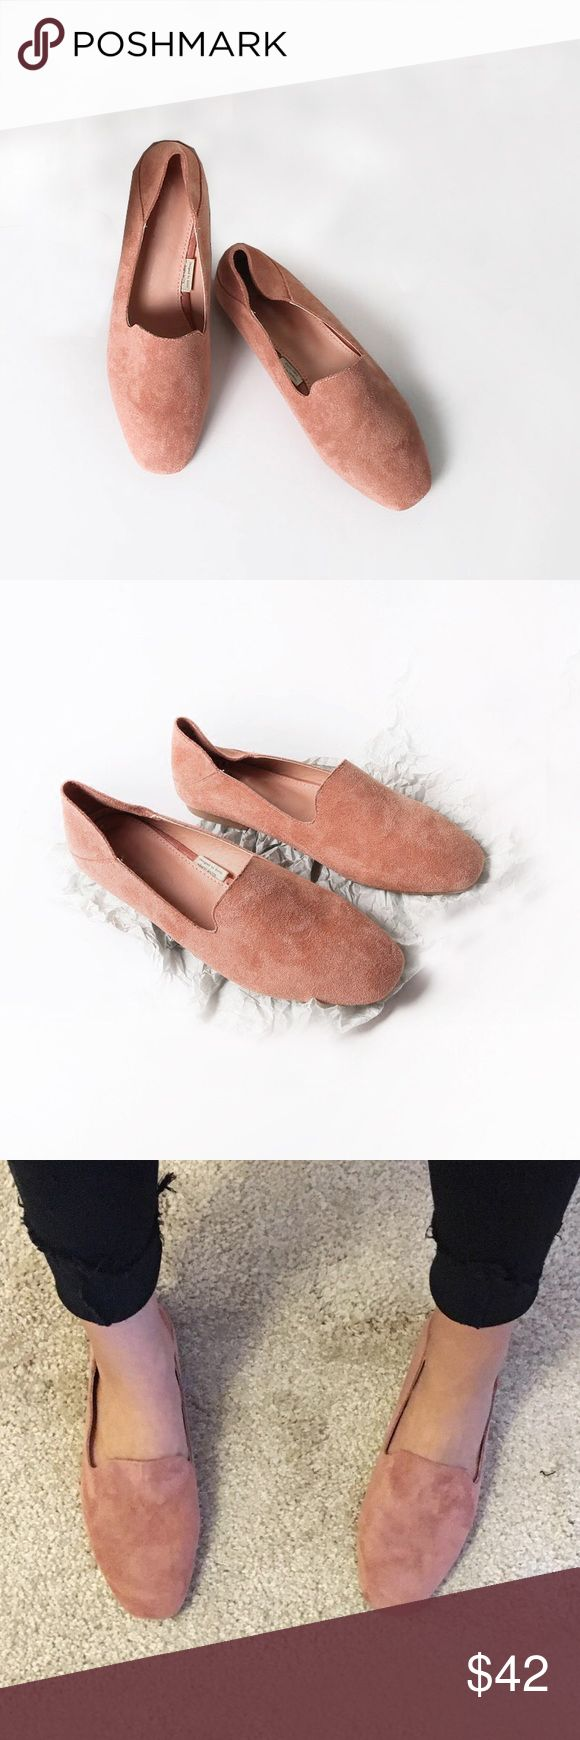 🆕 Pink soft loafer Brand new. Comfy and cute. Goes well with everything, shorts, jeans, skirts and dresses. You can wear it as a loafer or as a slipper. Size 38 fits 37.5 too Shoes Flats & Loafers